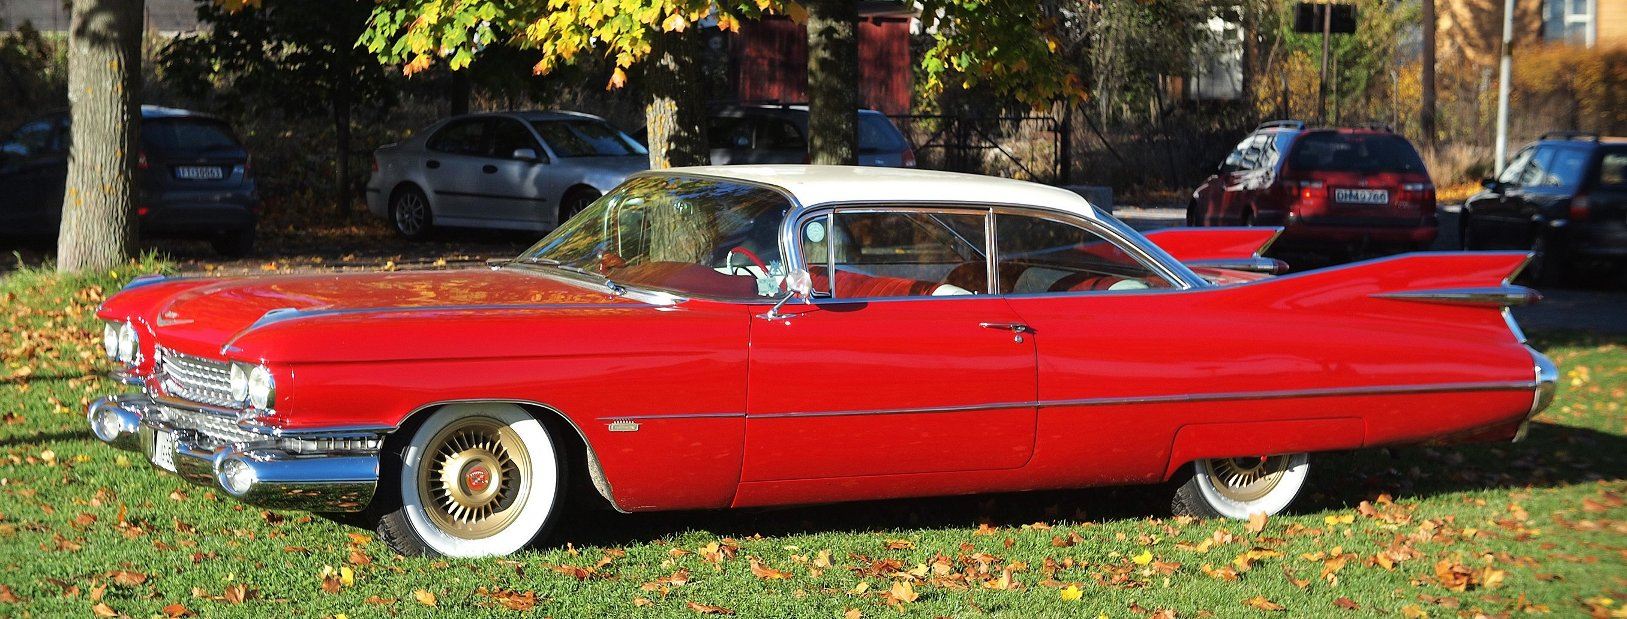 1959 Cadillac Coupe for bryllupskjøring